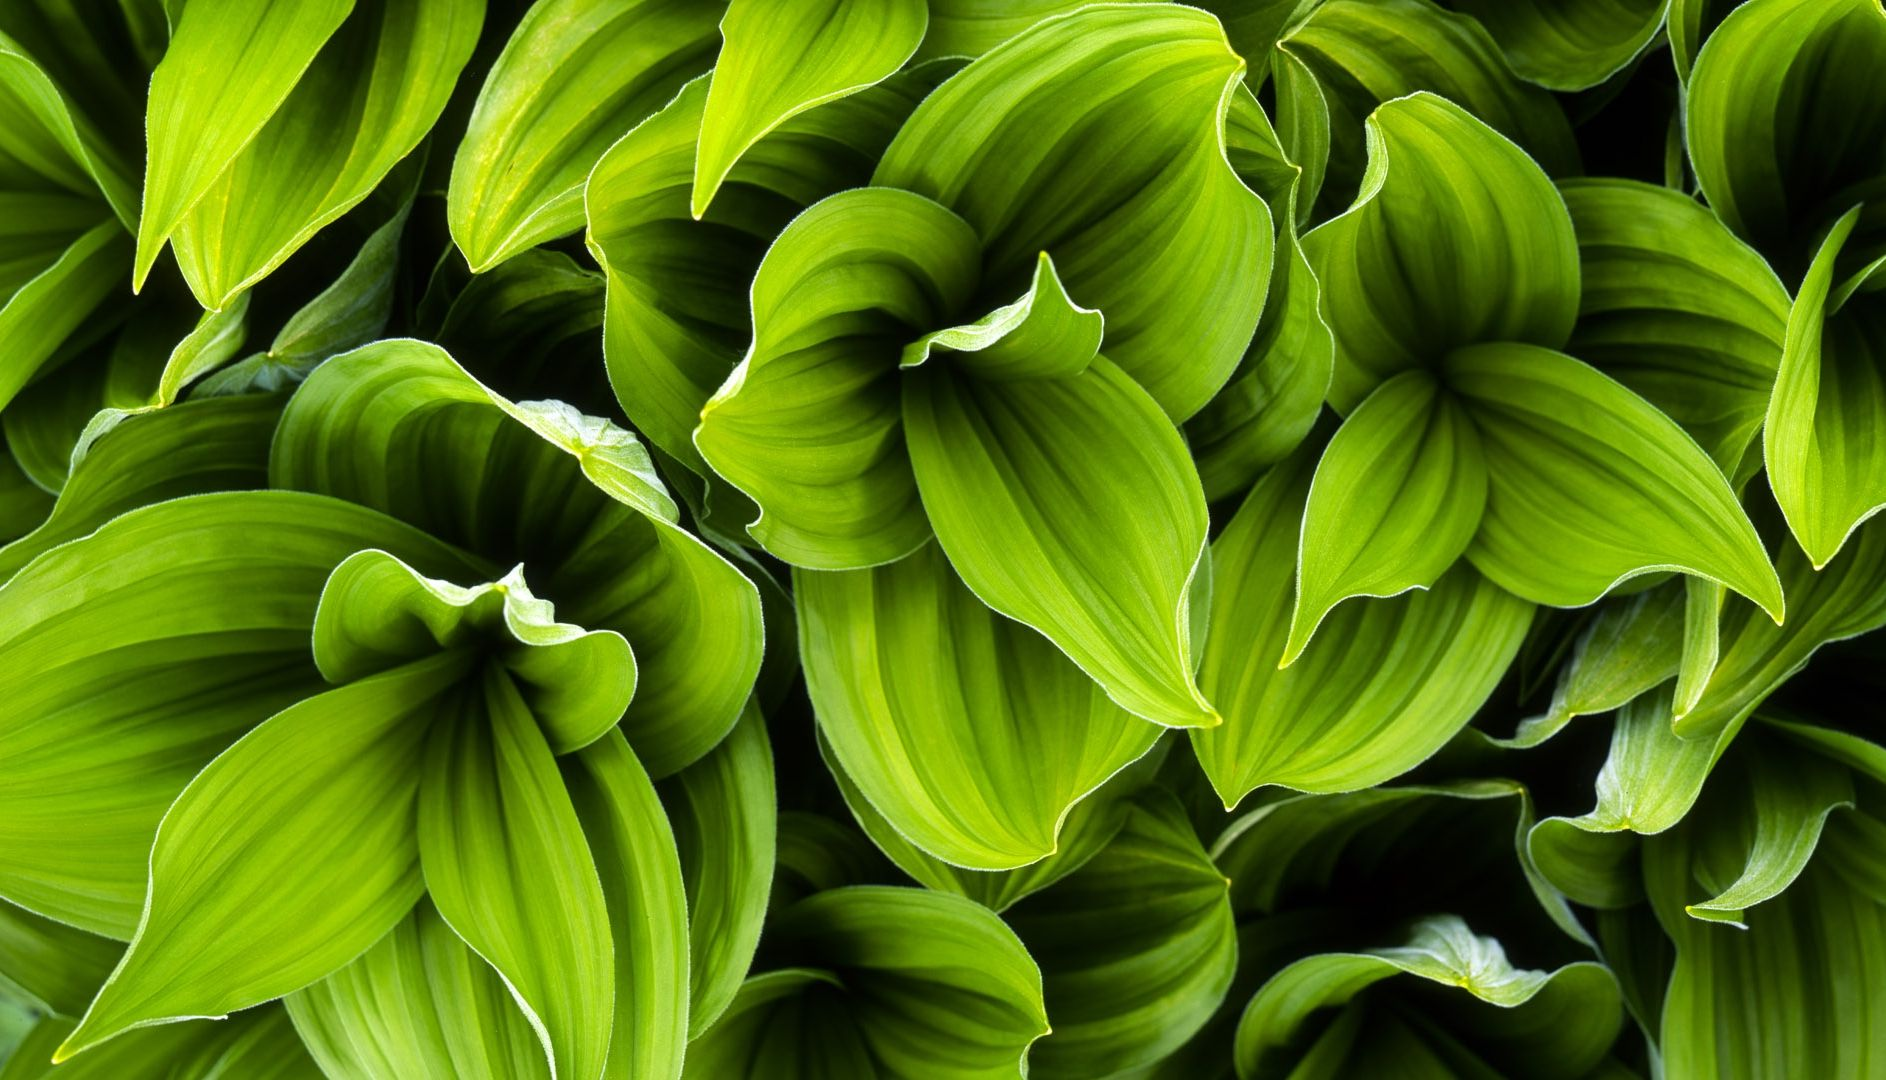 green_leaves_background-other